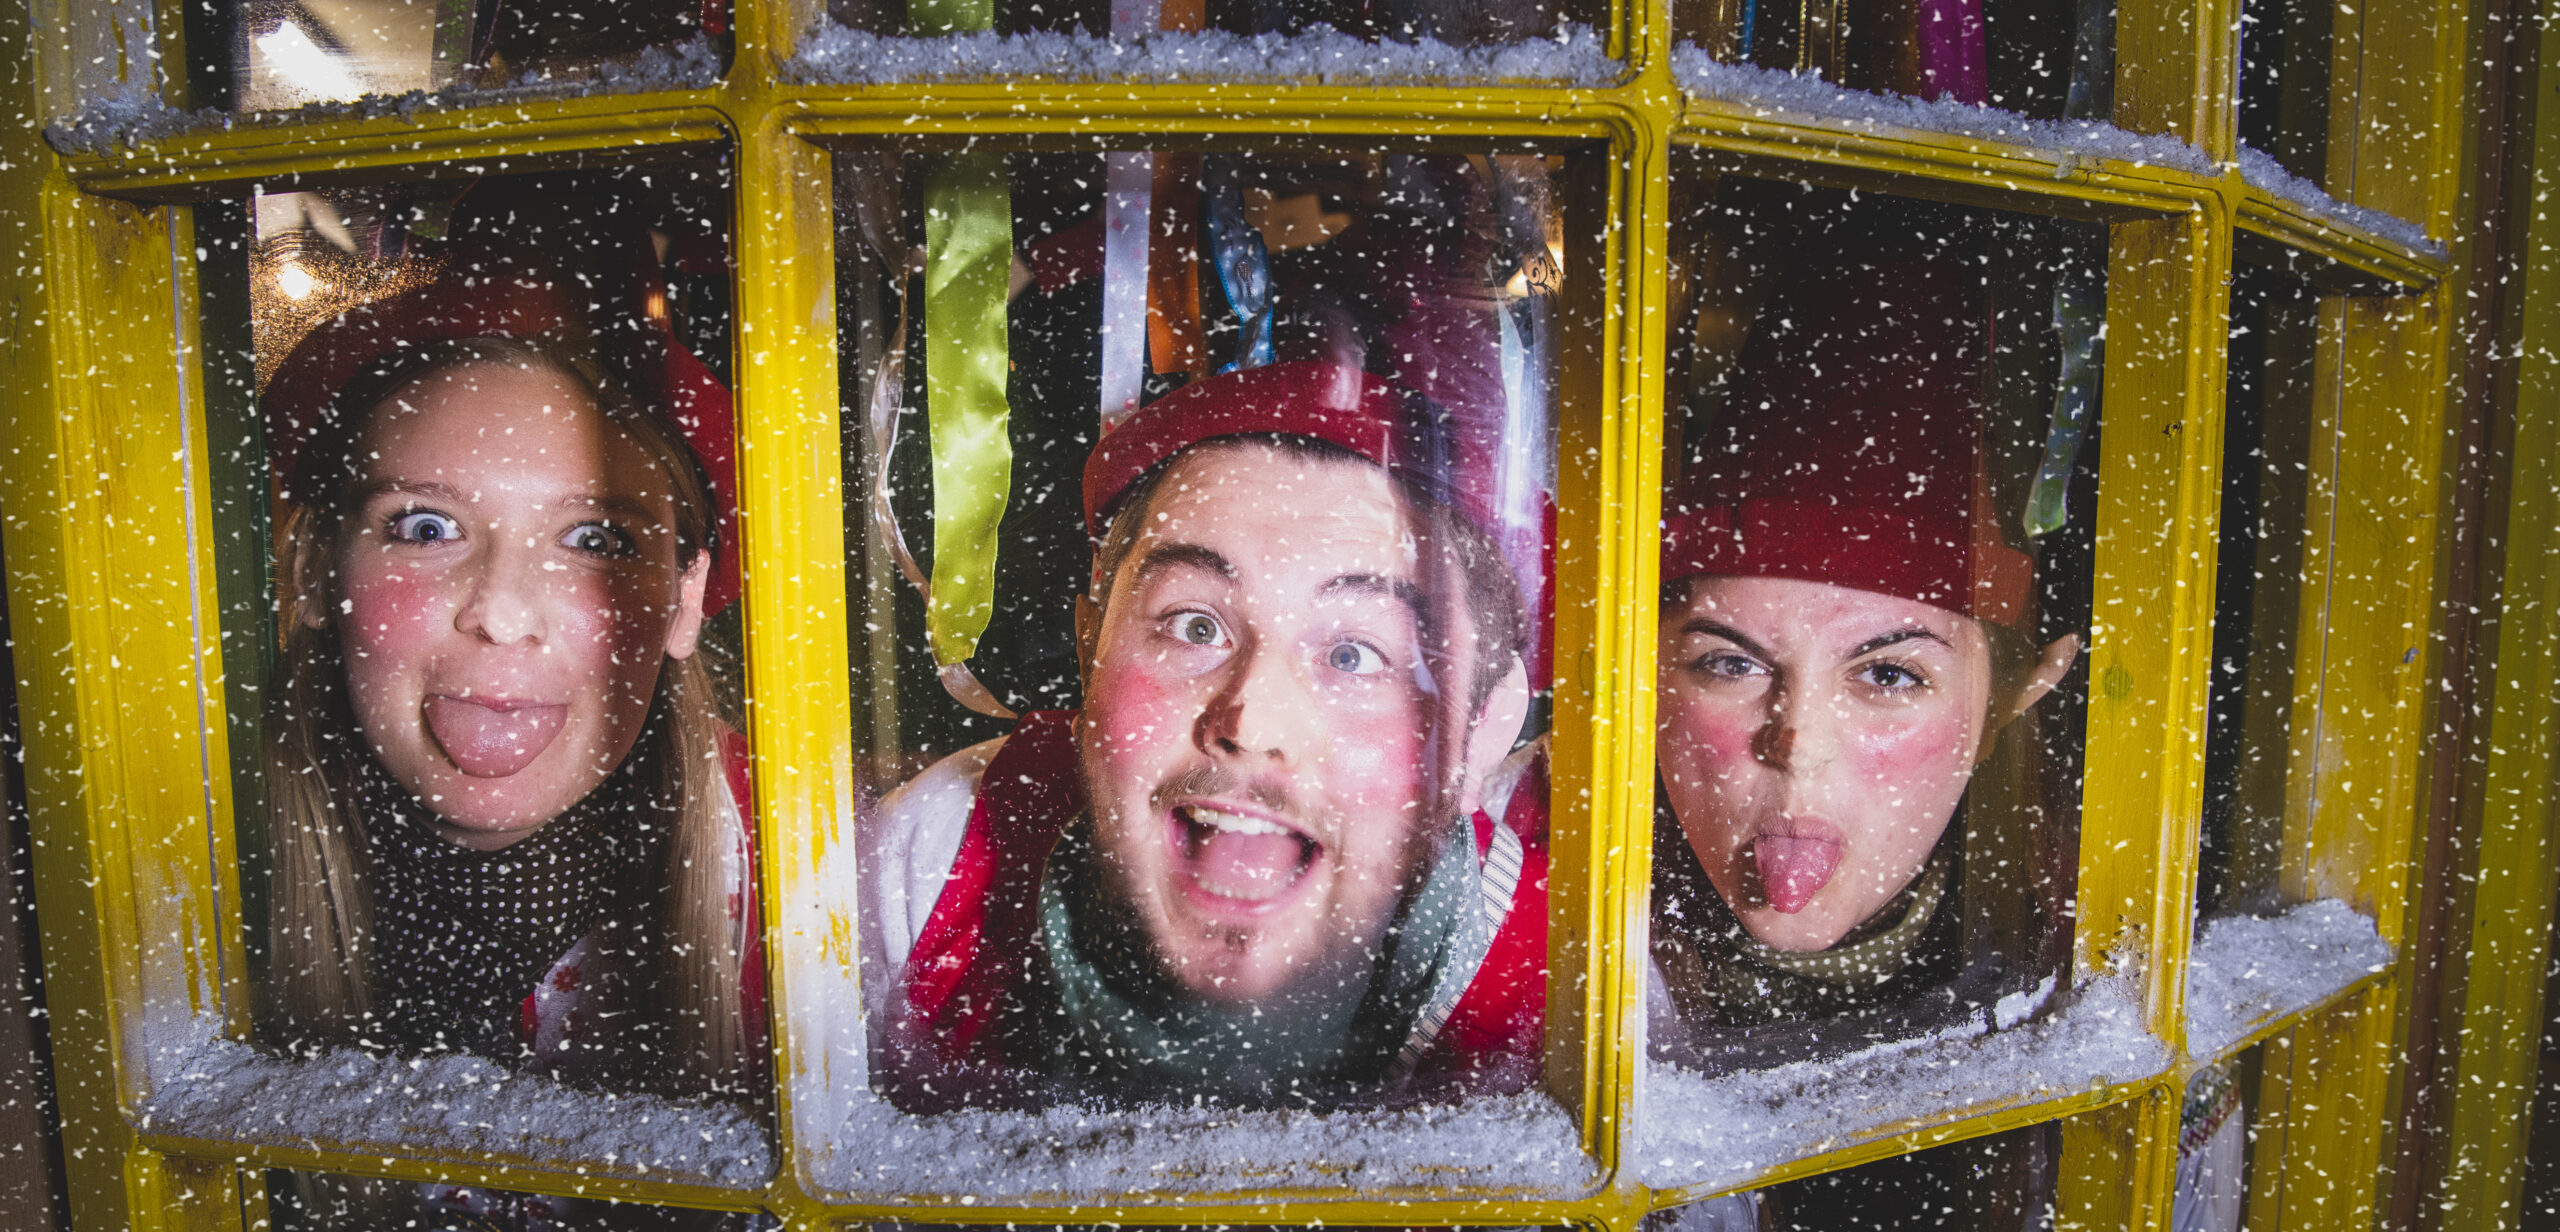 Three of Father Christmas' elves sticking their tongues out through a shop window